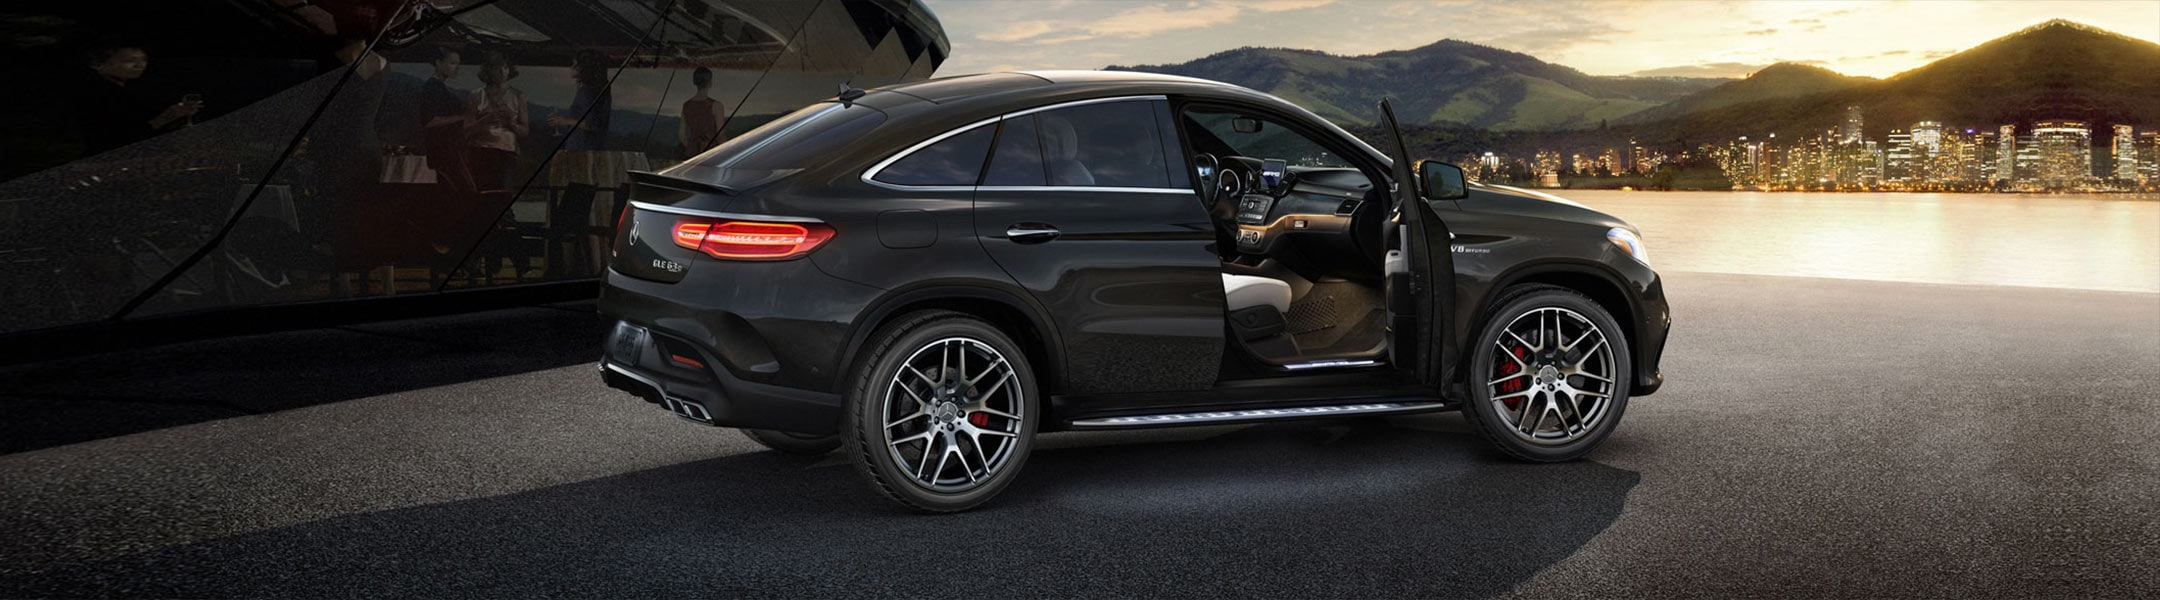 Mbrace westwood ma mercedes benz of westwood for Mercedes benz mbrace reviews